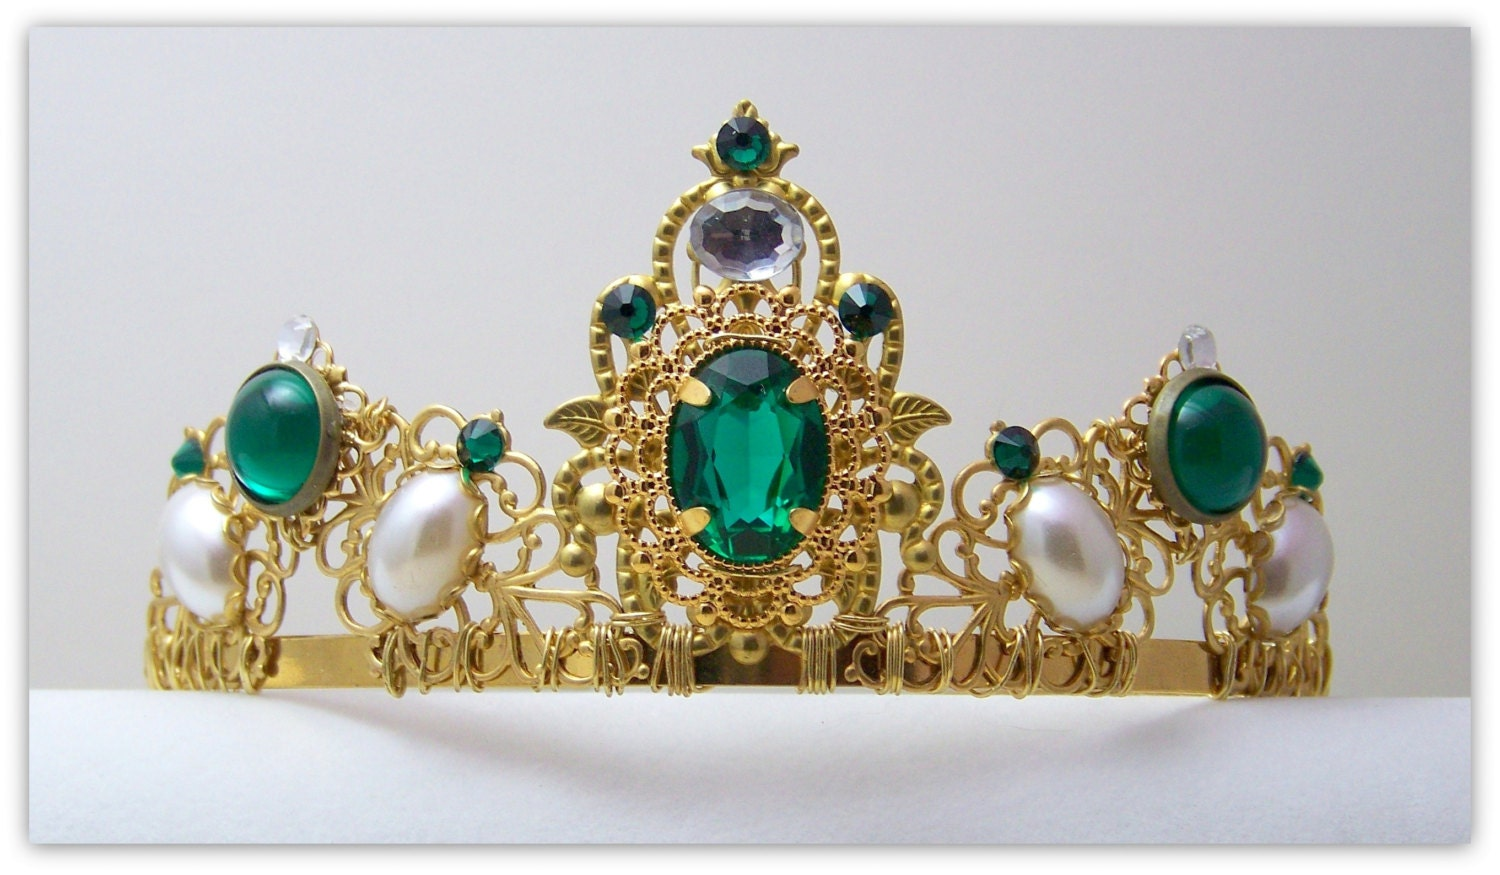 Medieval crown renaissance crown reign tiara reign crown for Mary queen of scots replica jewelry